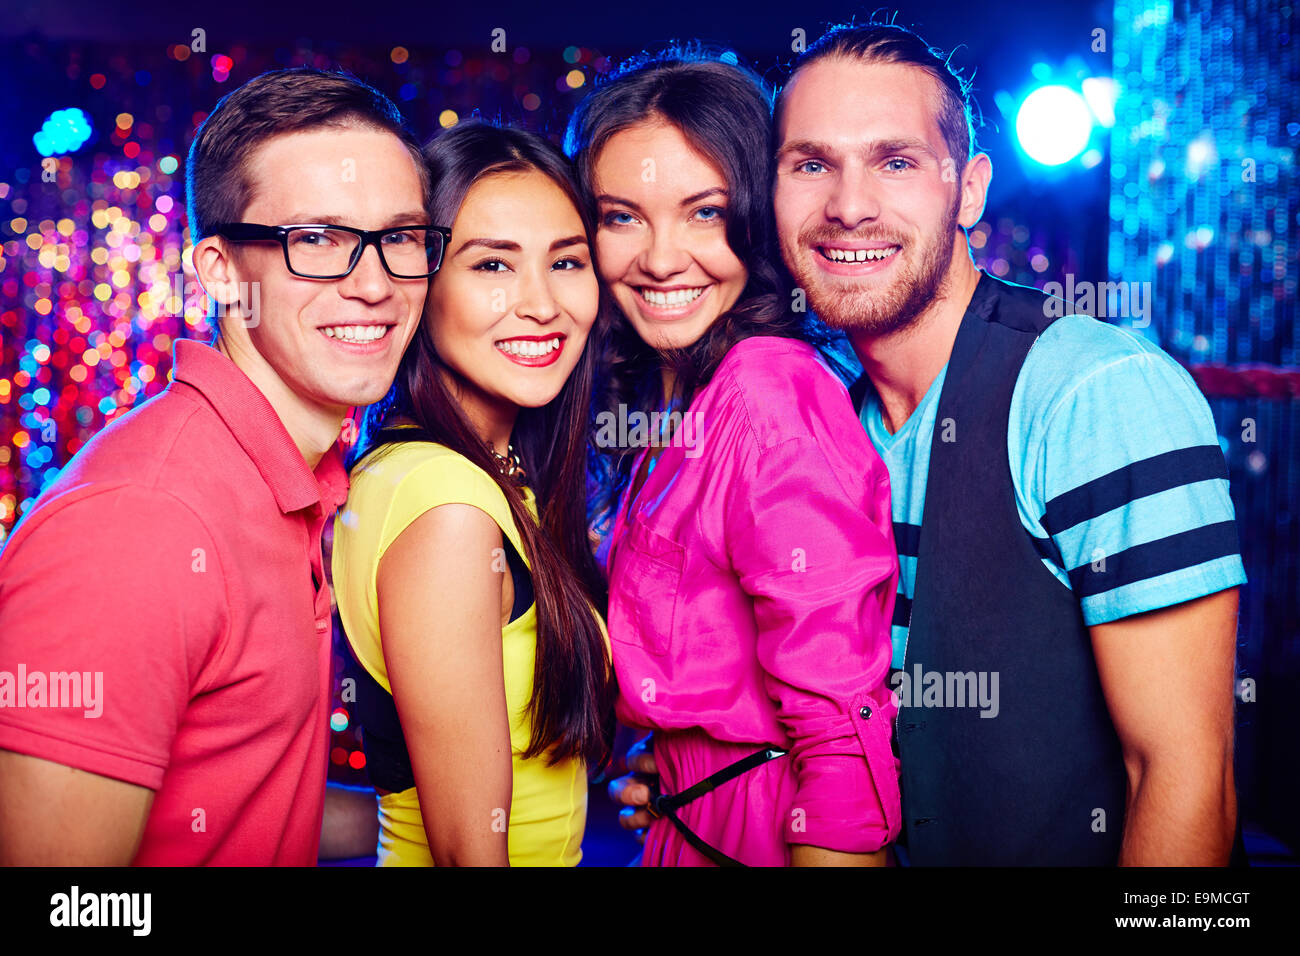 Portrait of two happy couples clubbing together - Stock Image